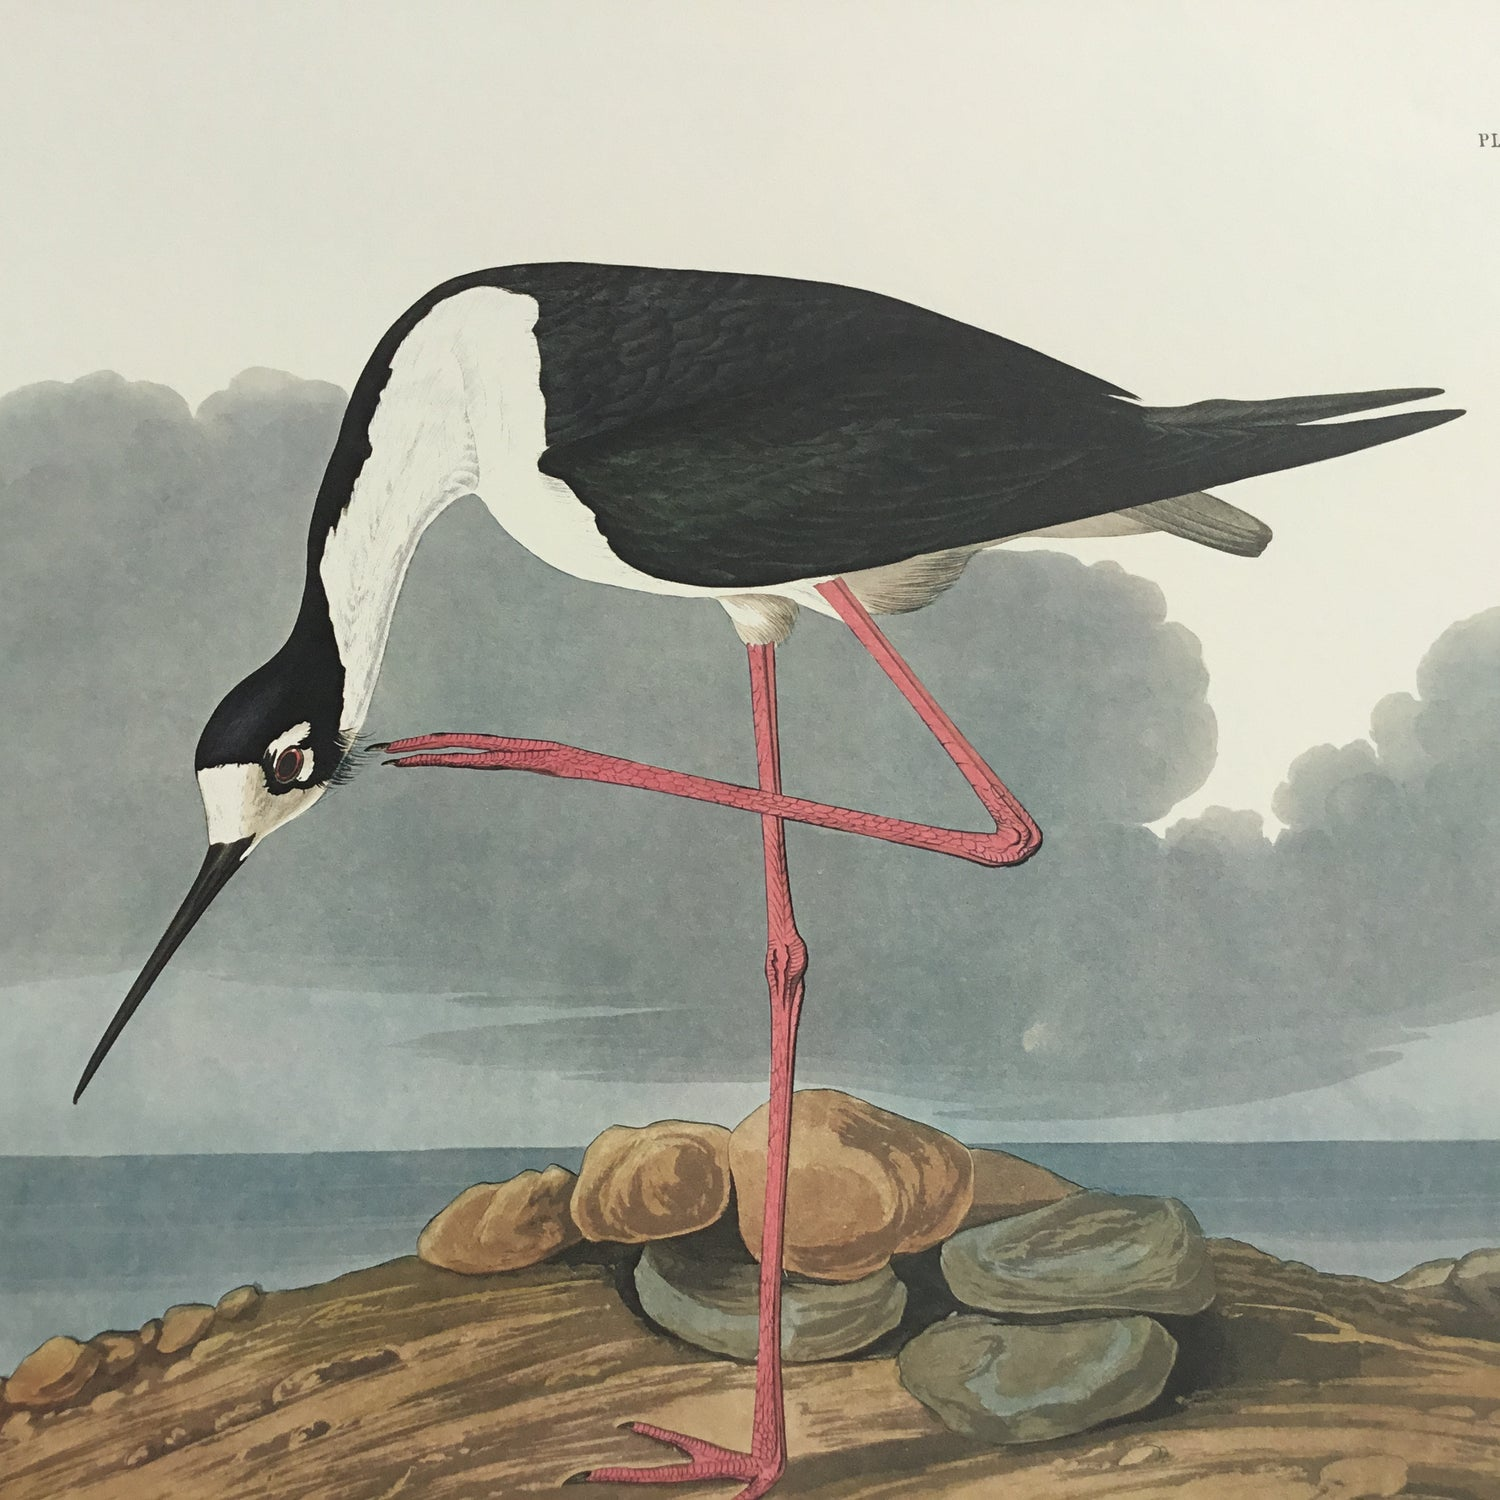 Long-legged Avocet Audubon Print. Princeton Audubon. World's only direct camera edition of this image.